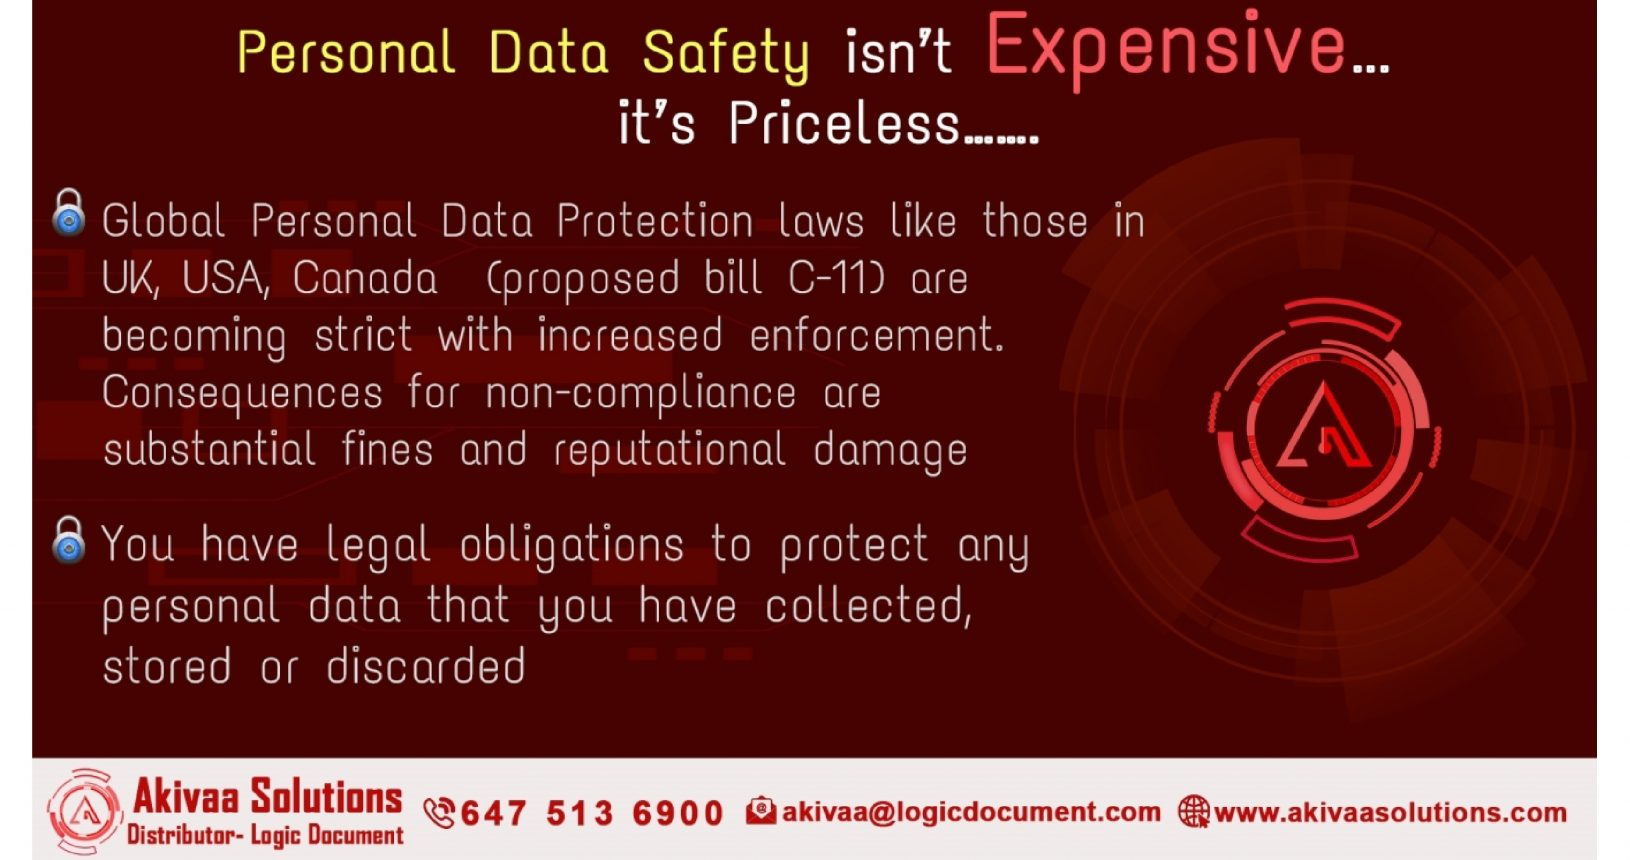 Personal Data Safety is Priceless